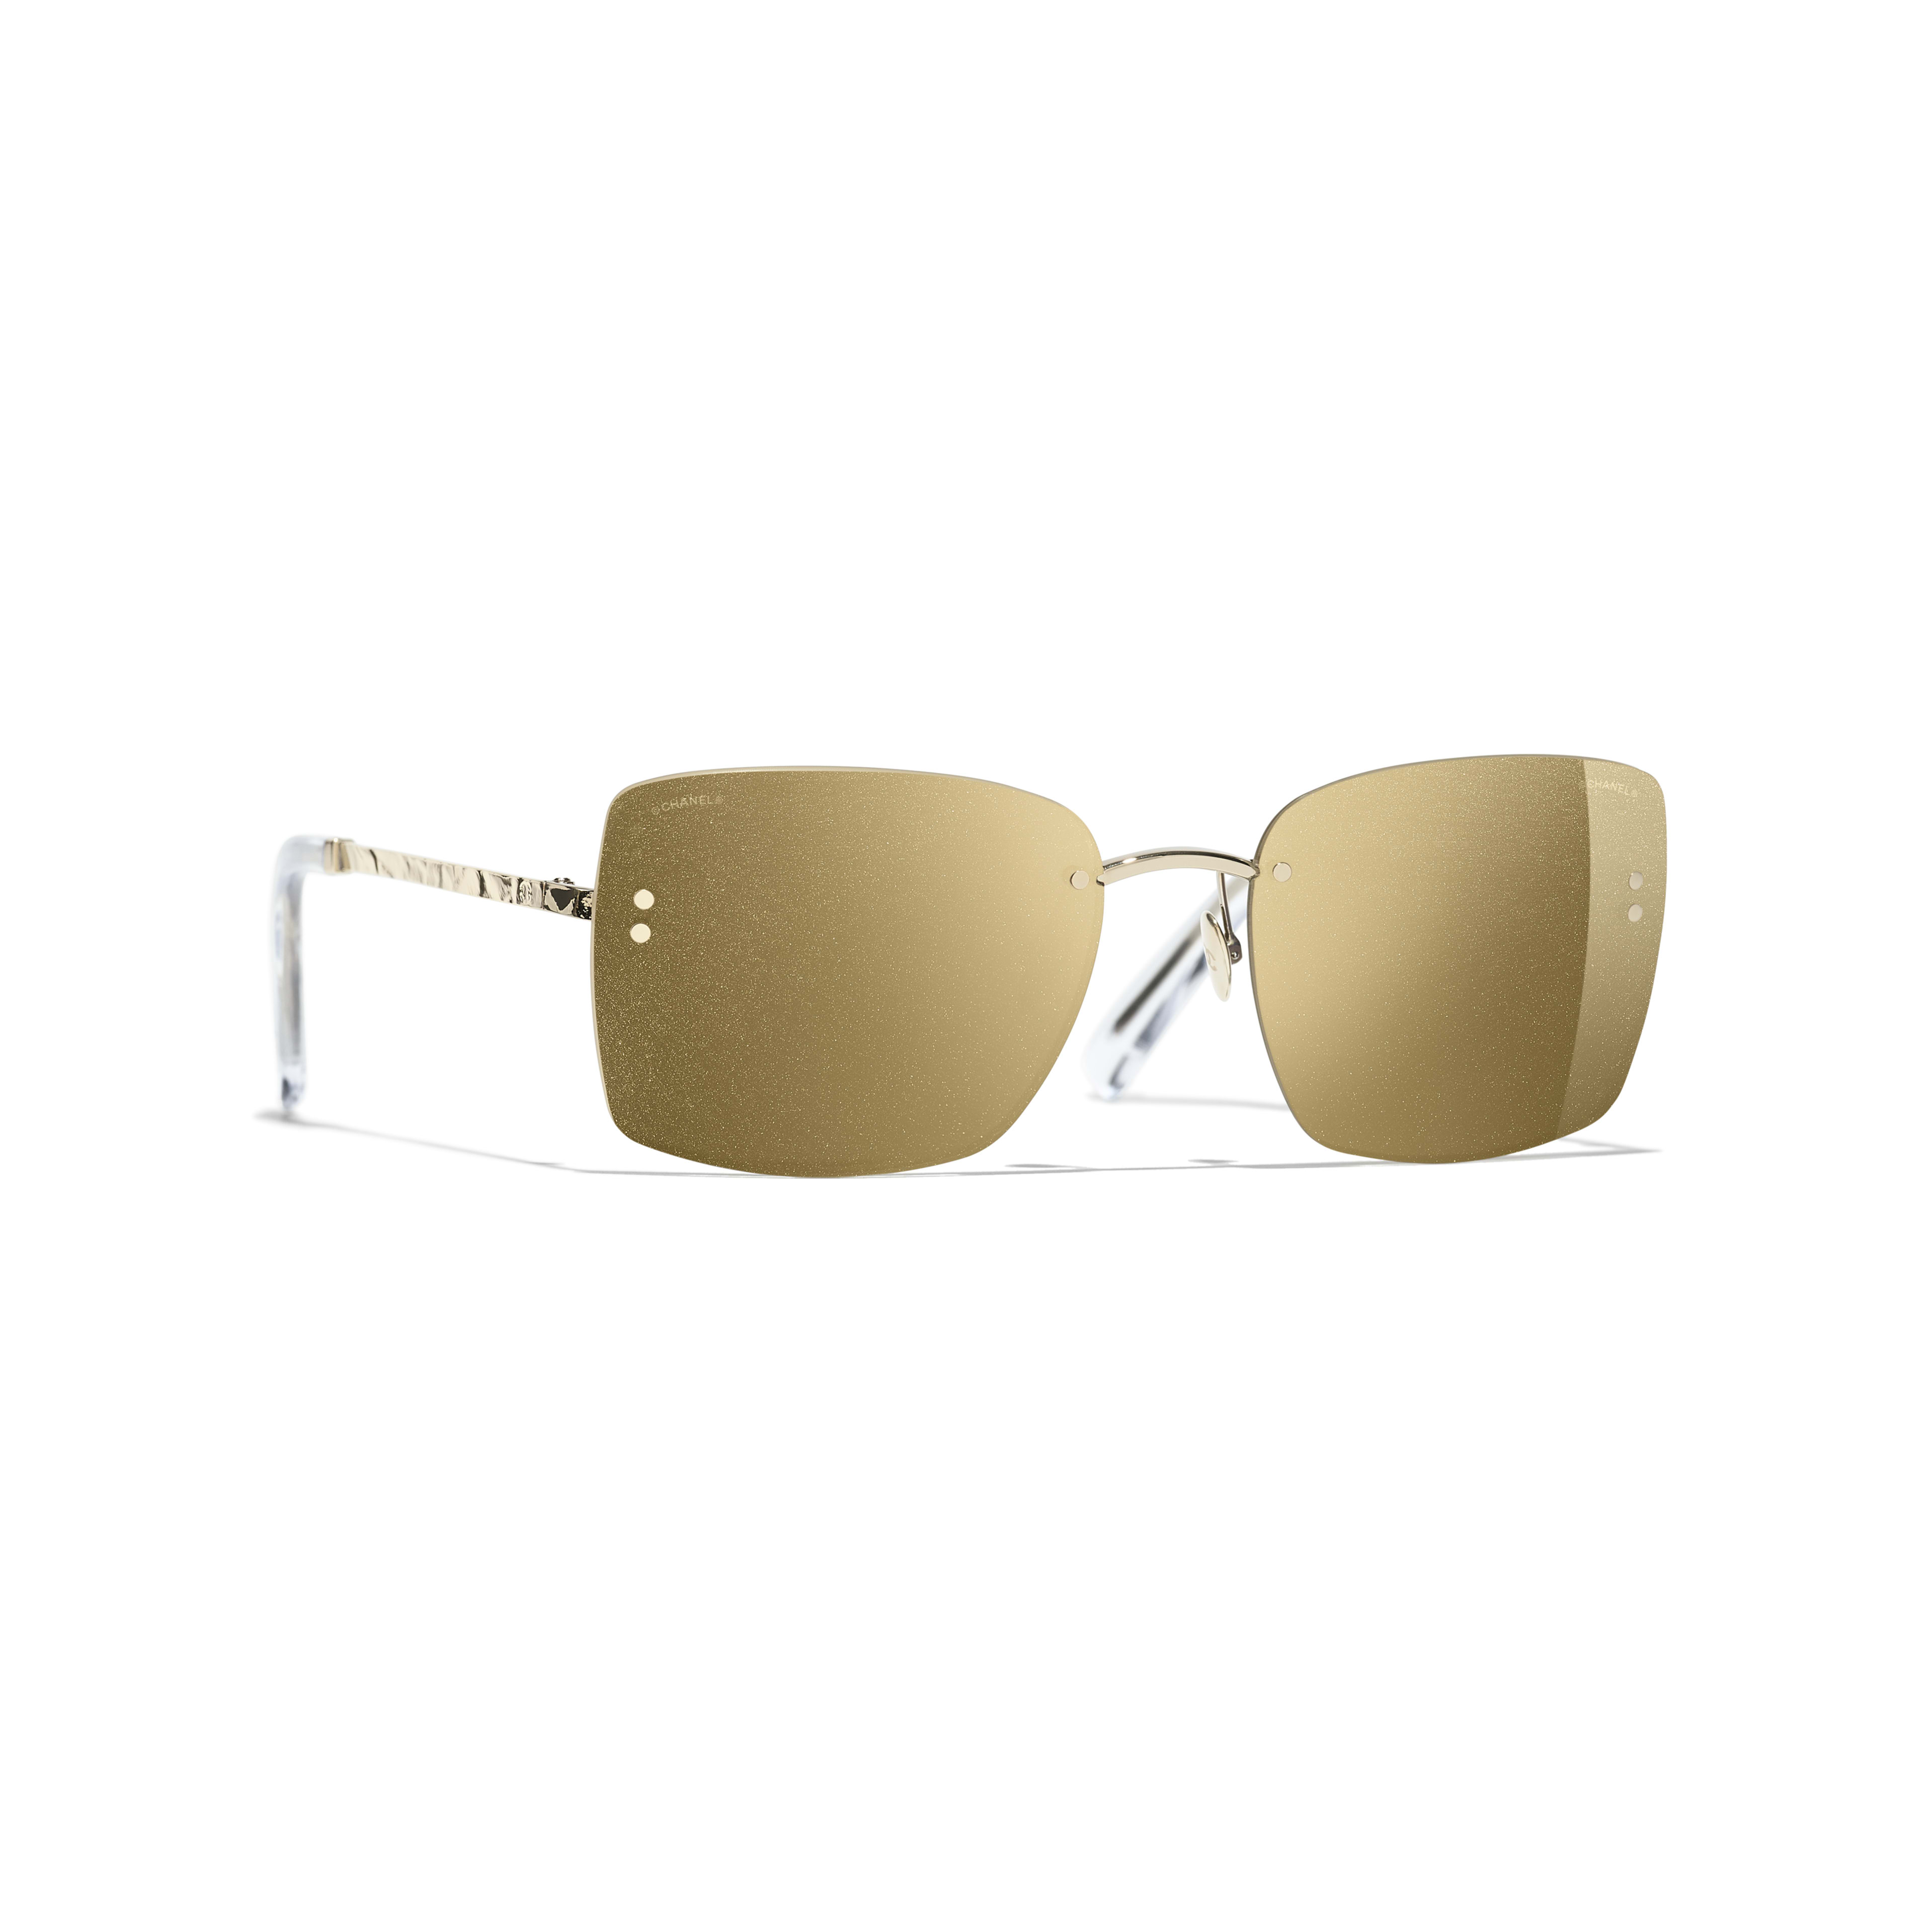 Square Sunglasses - Gold - Metal - Default view - see full sized version